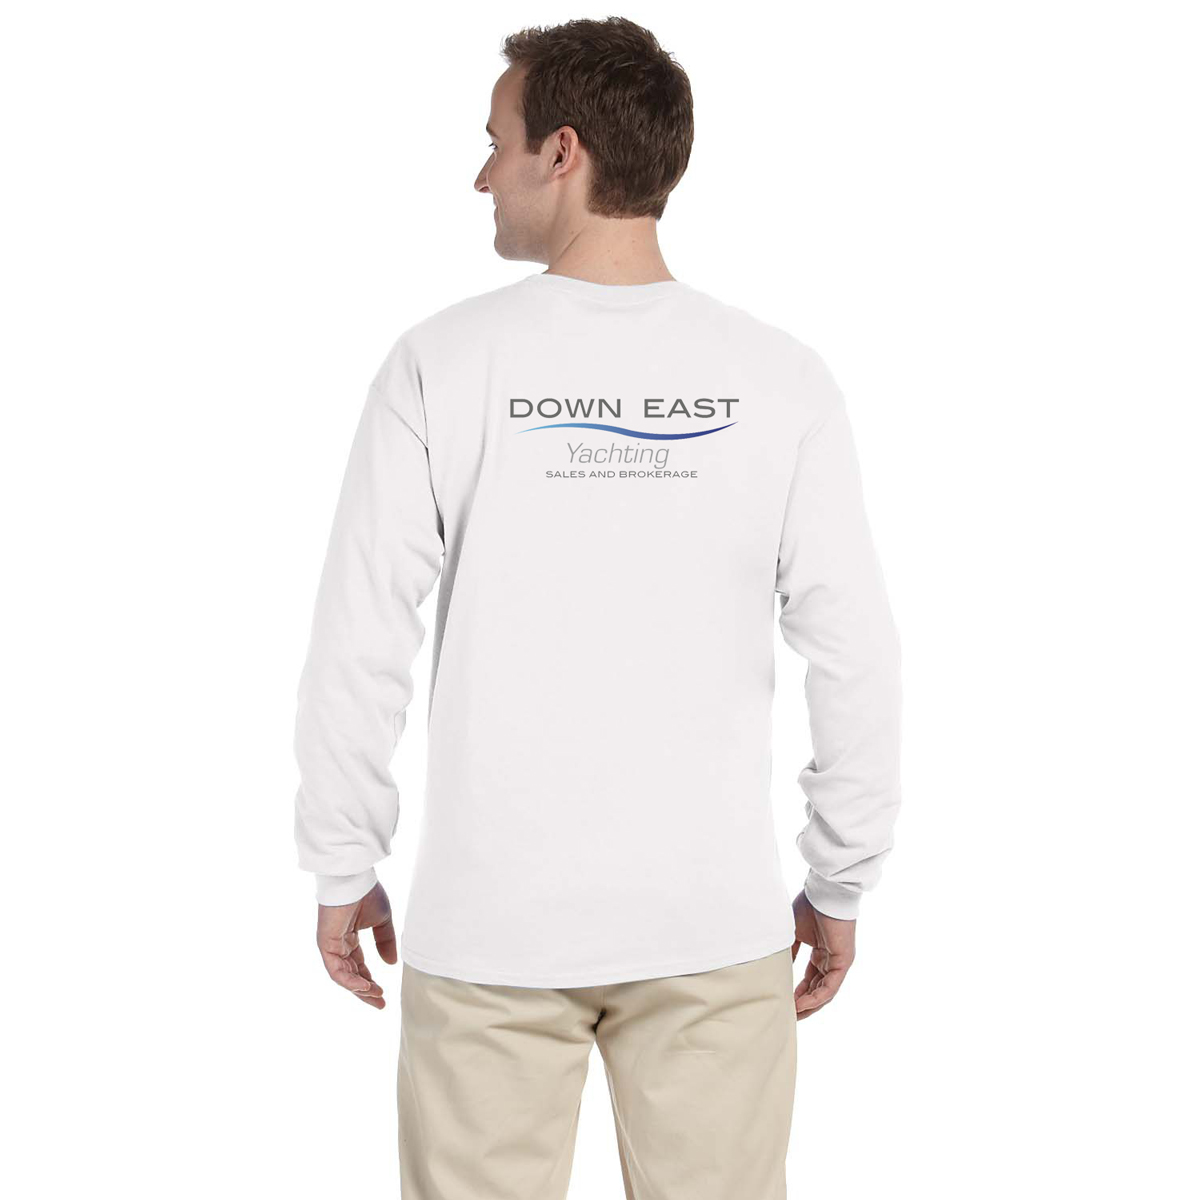 DOWN EAST YACHTING - M'S L/S TECH TEE